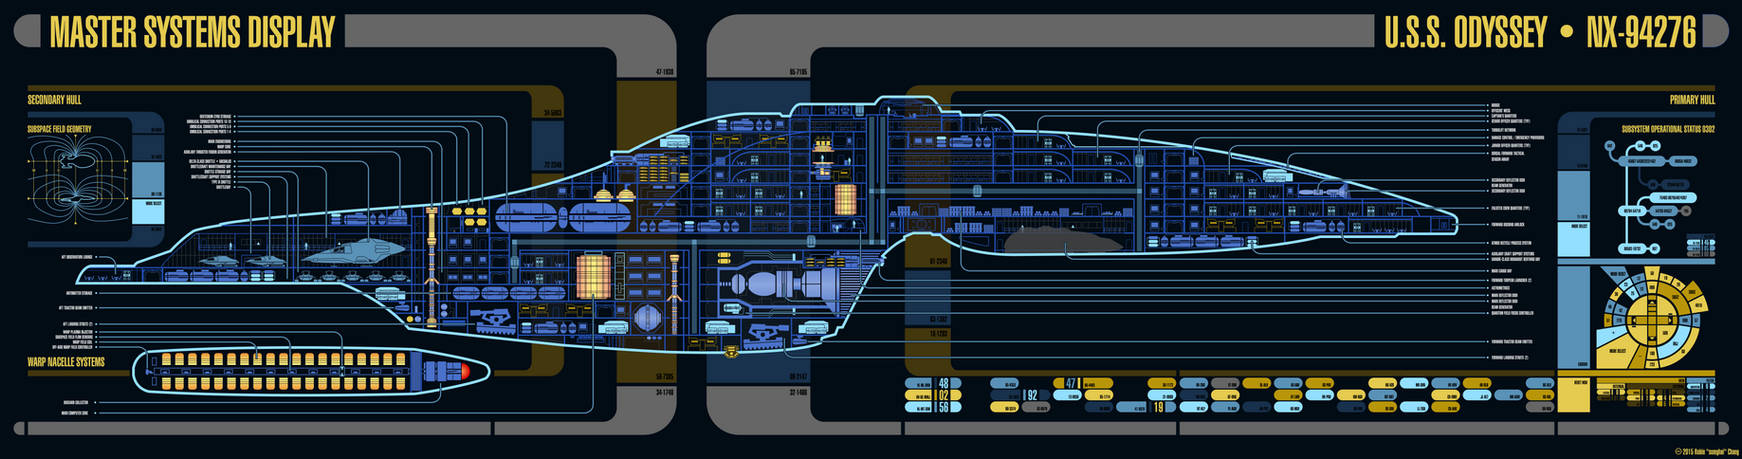 USS Odyssey (NX-94276) - Master Systems Display